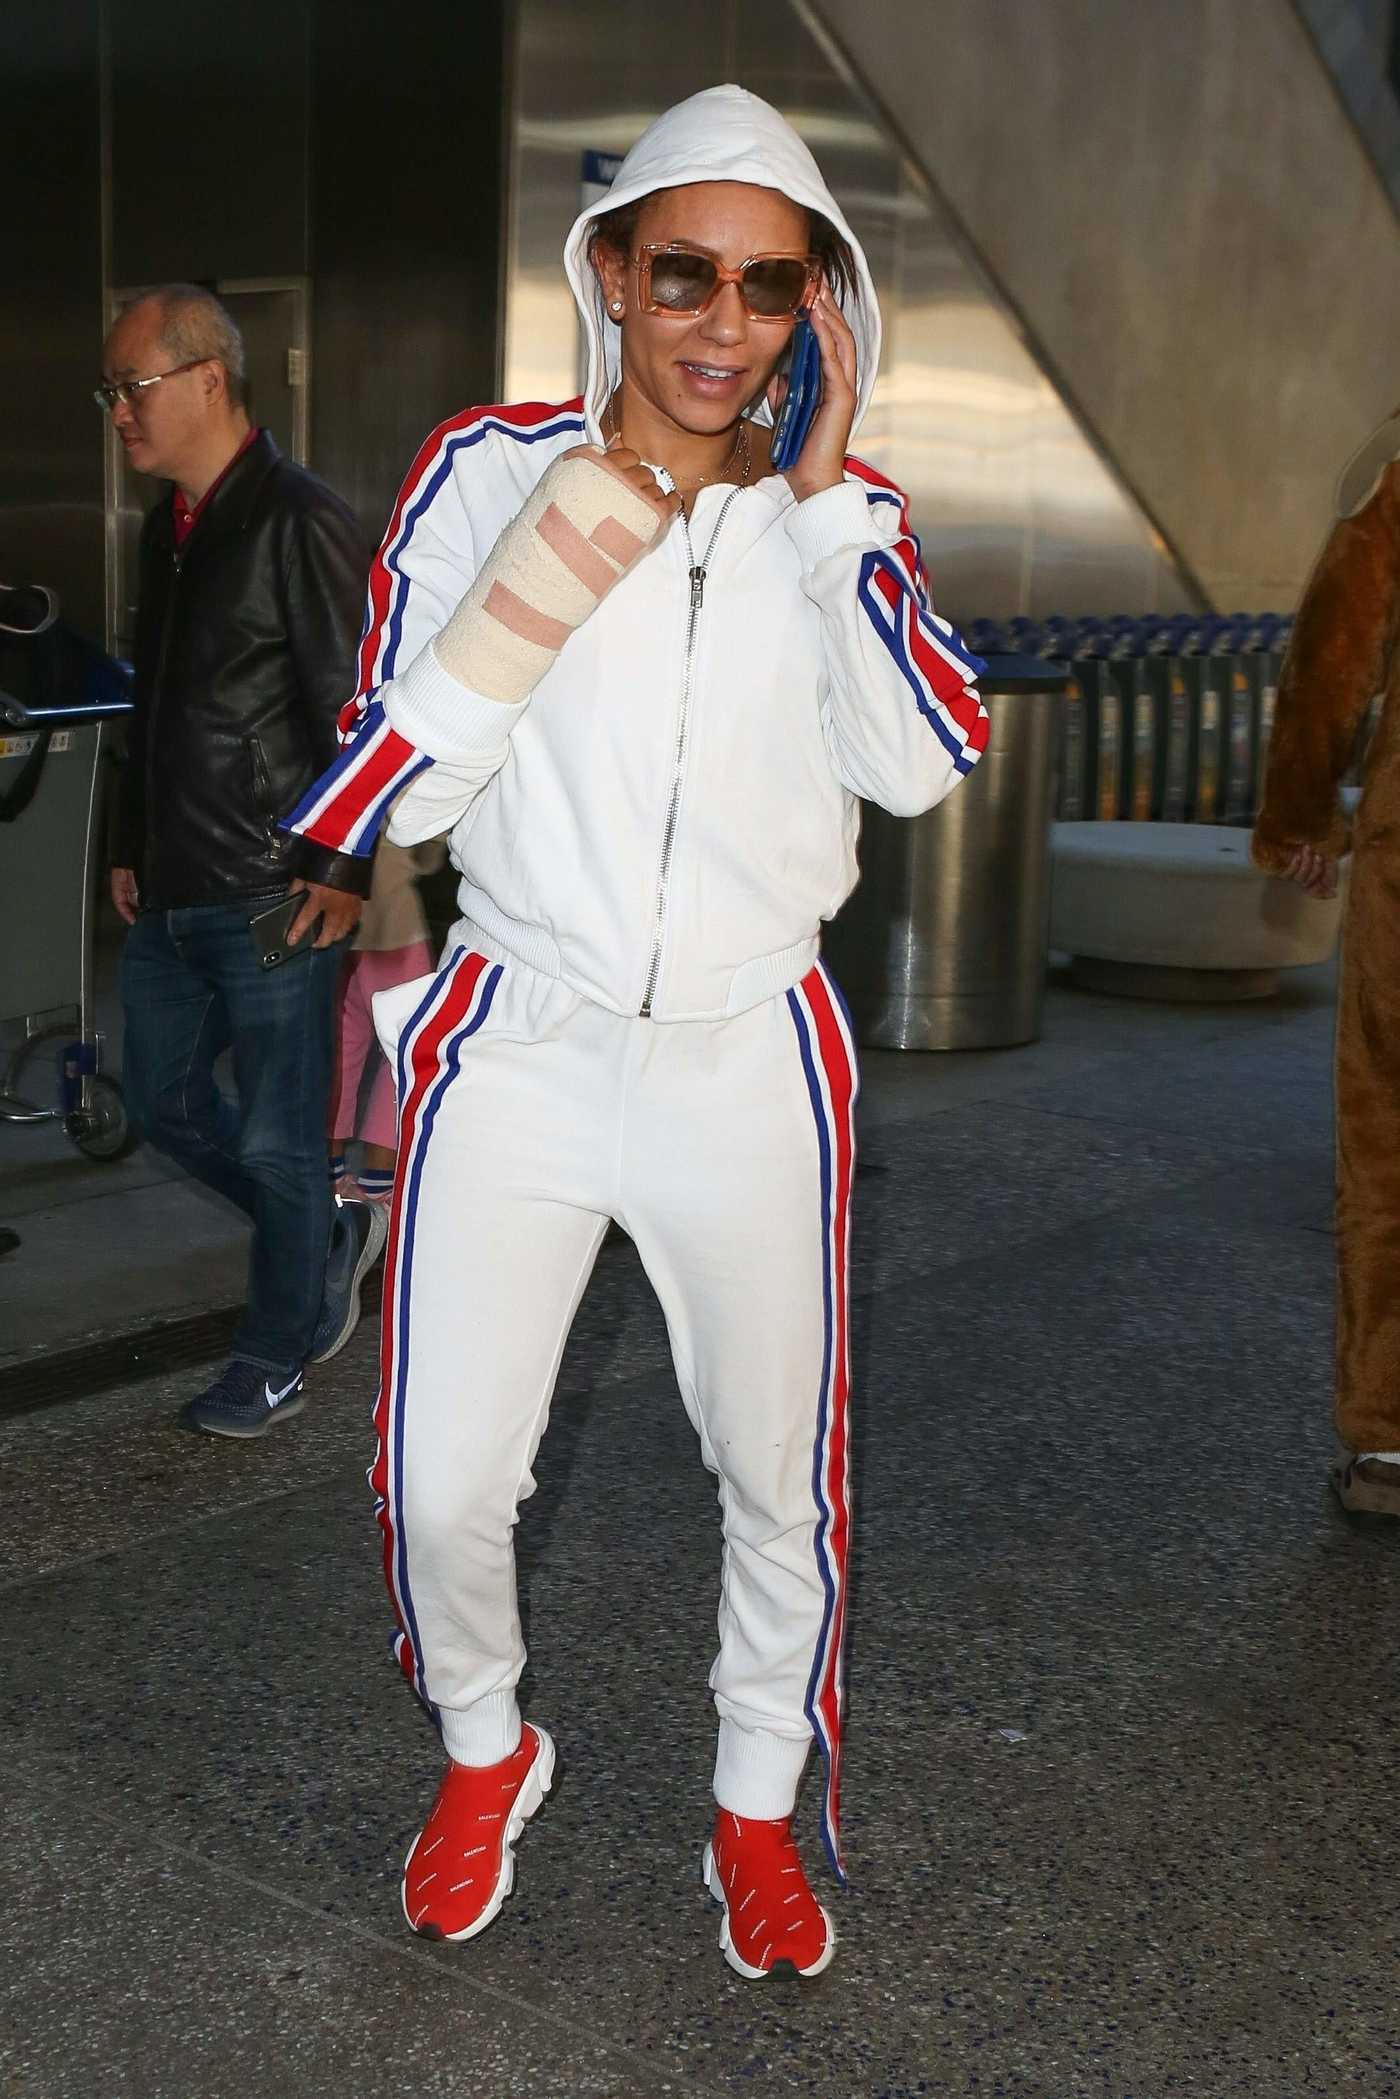 Melanie Brown in a White Jogging Suit Arrives at LAX Airport in Los Angeles 12/21/2018